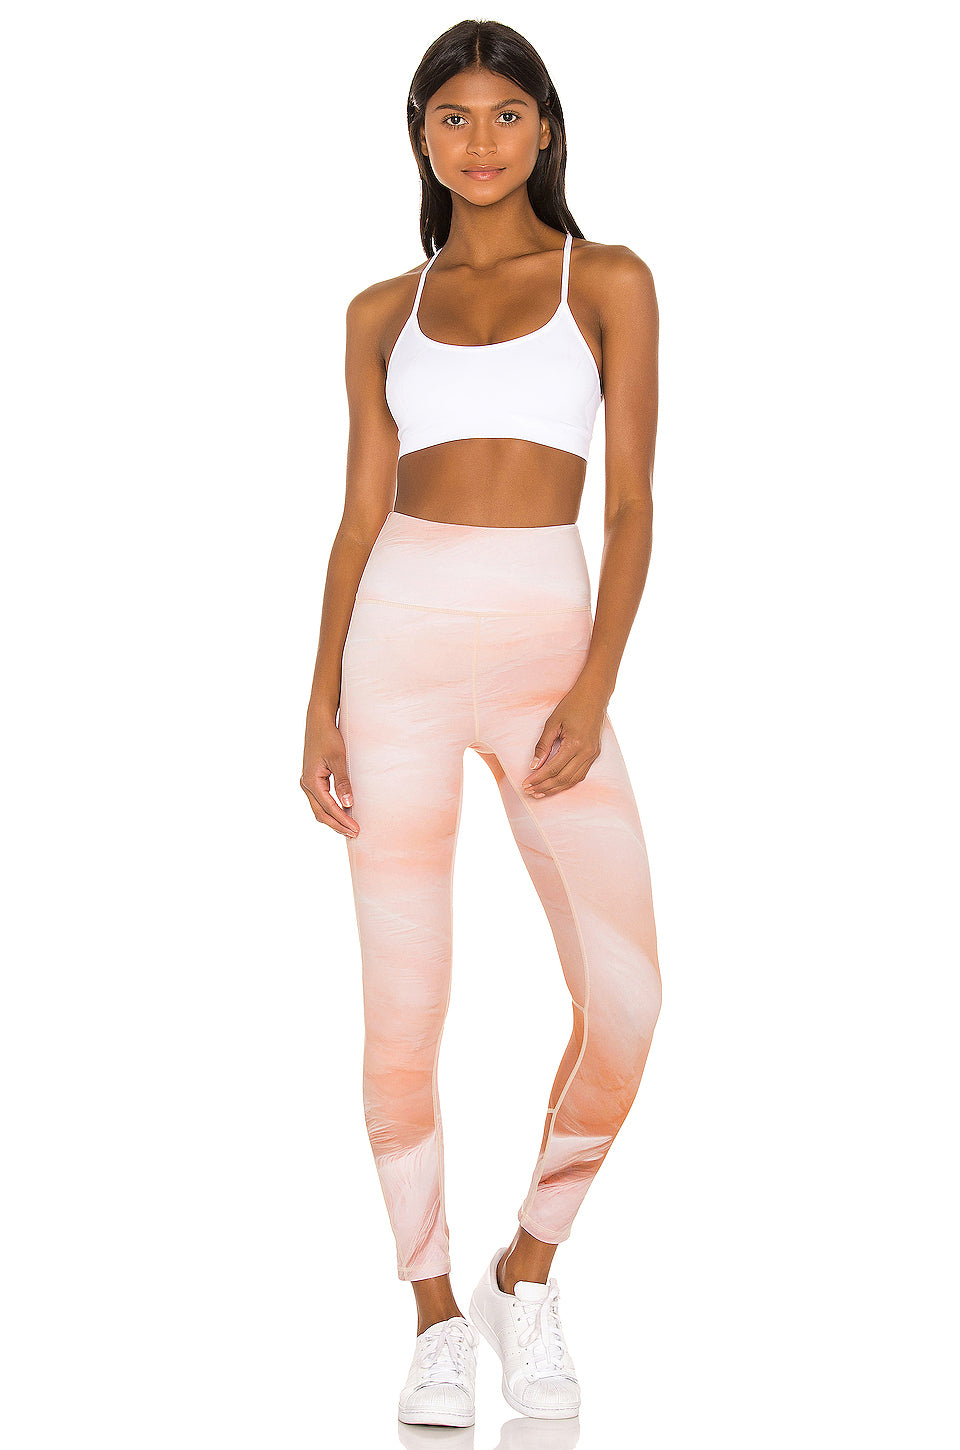 Nubyen activewear leggings, revolve nubyen activewar, celestal activewear leggings , best selling activewear leggings, nubyen nude lip plumper